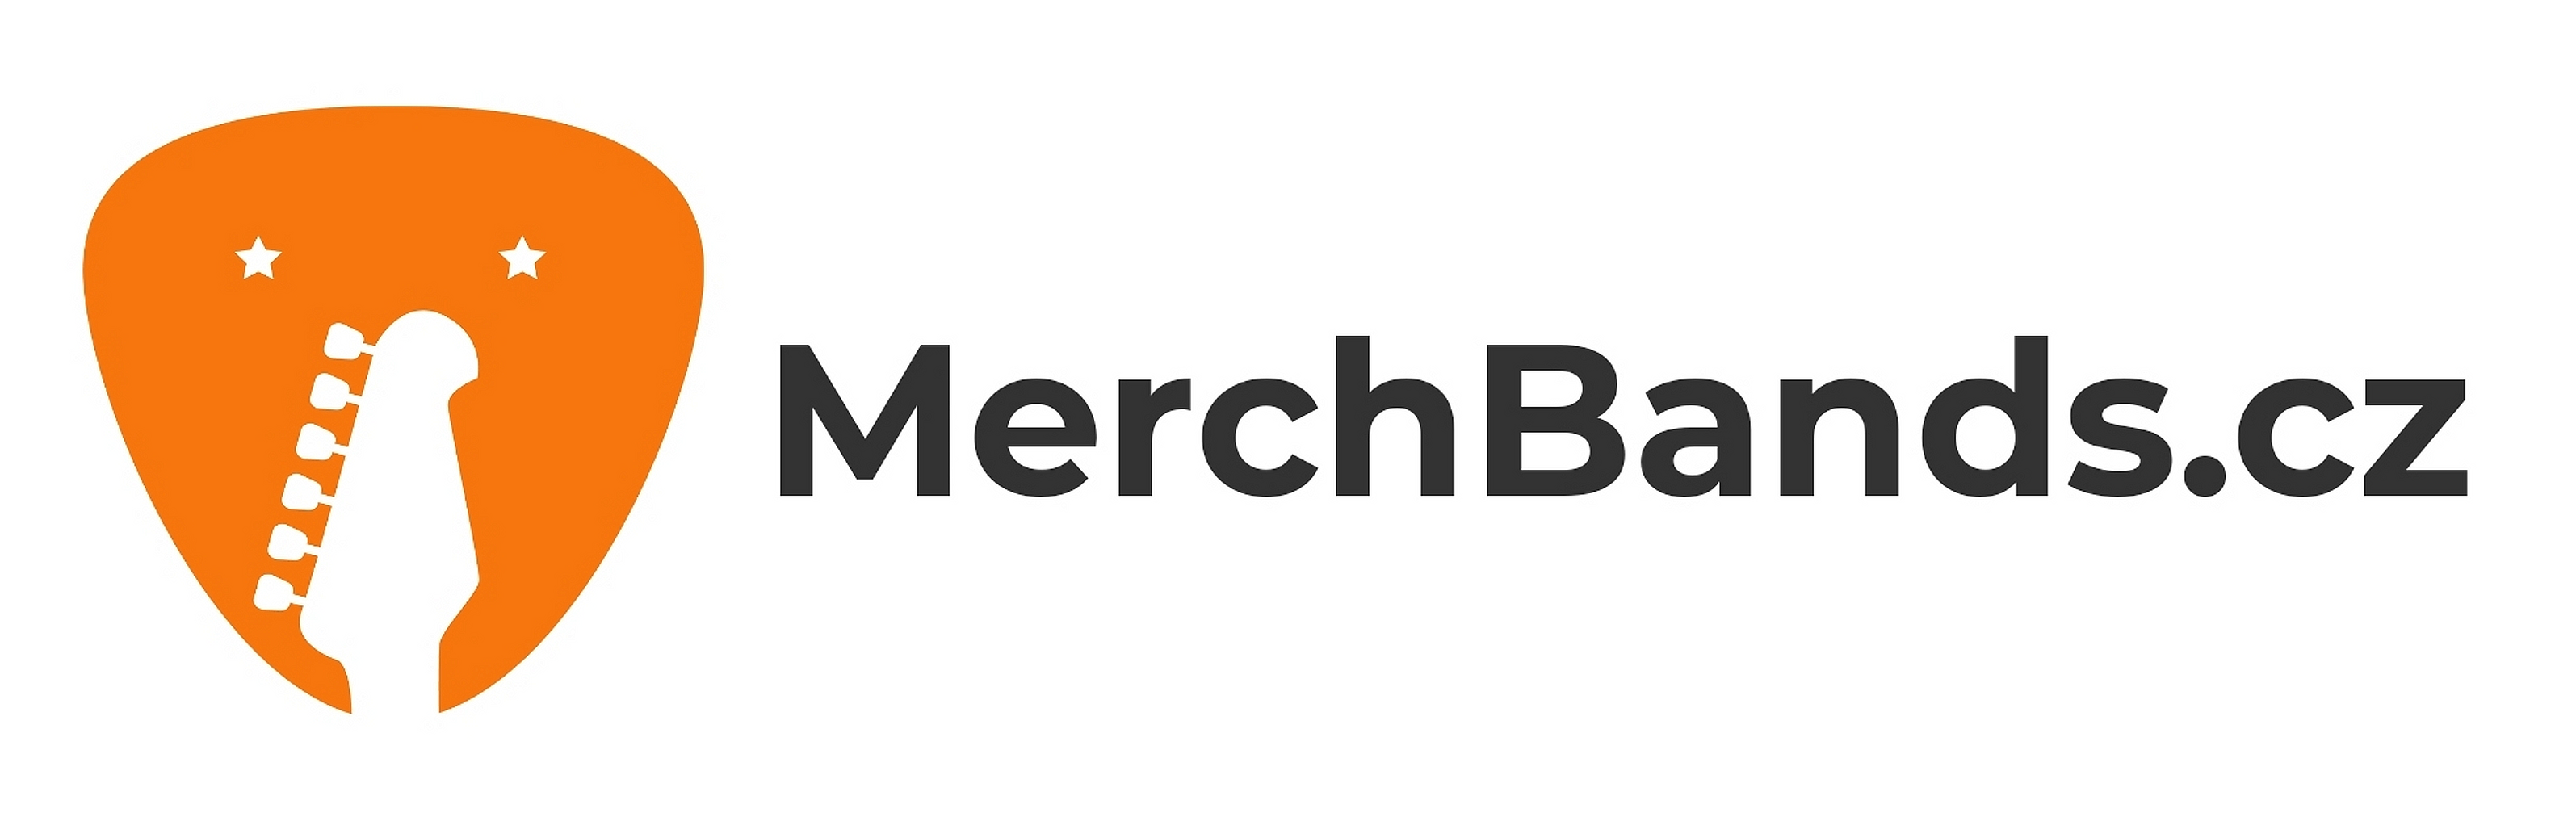 MerchBands.cz (e-shop)